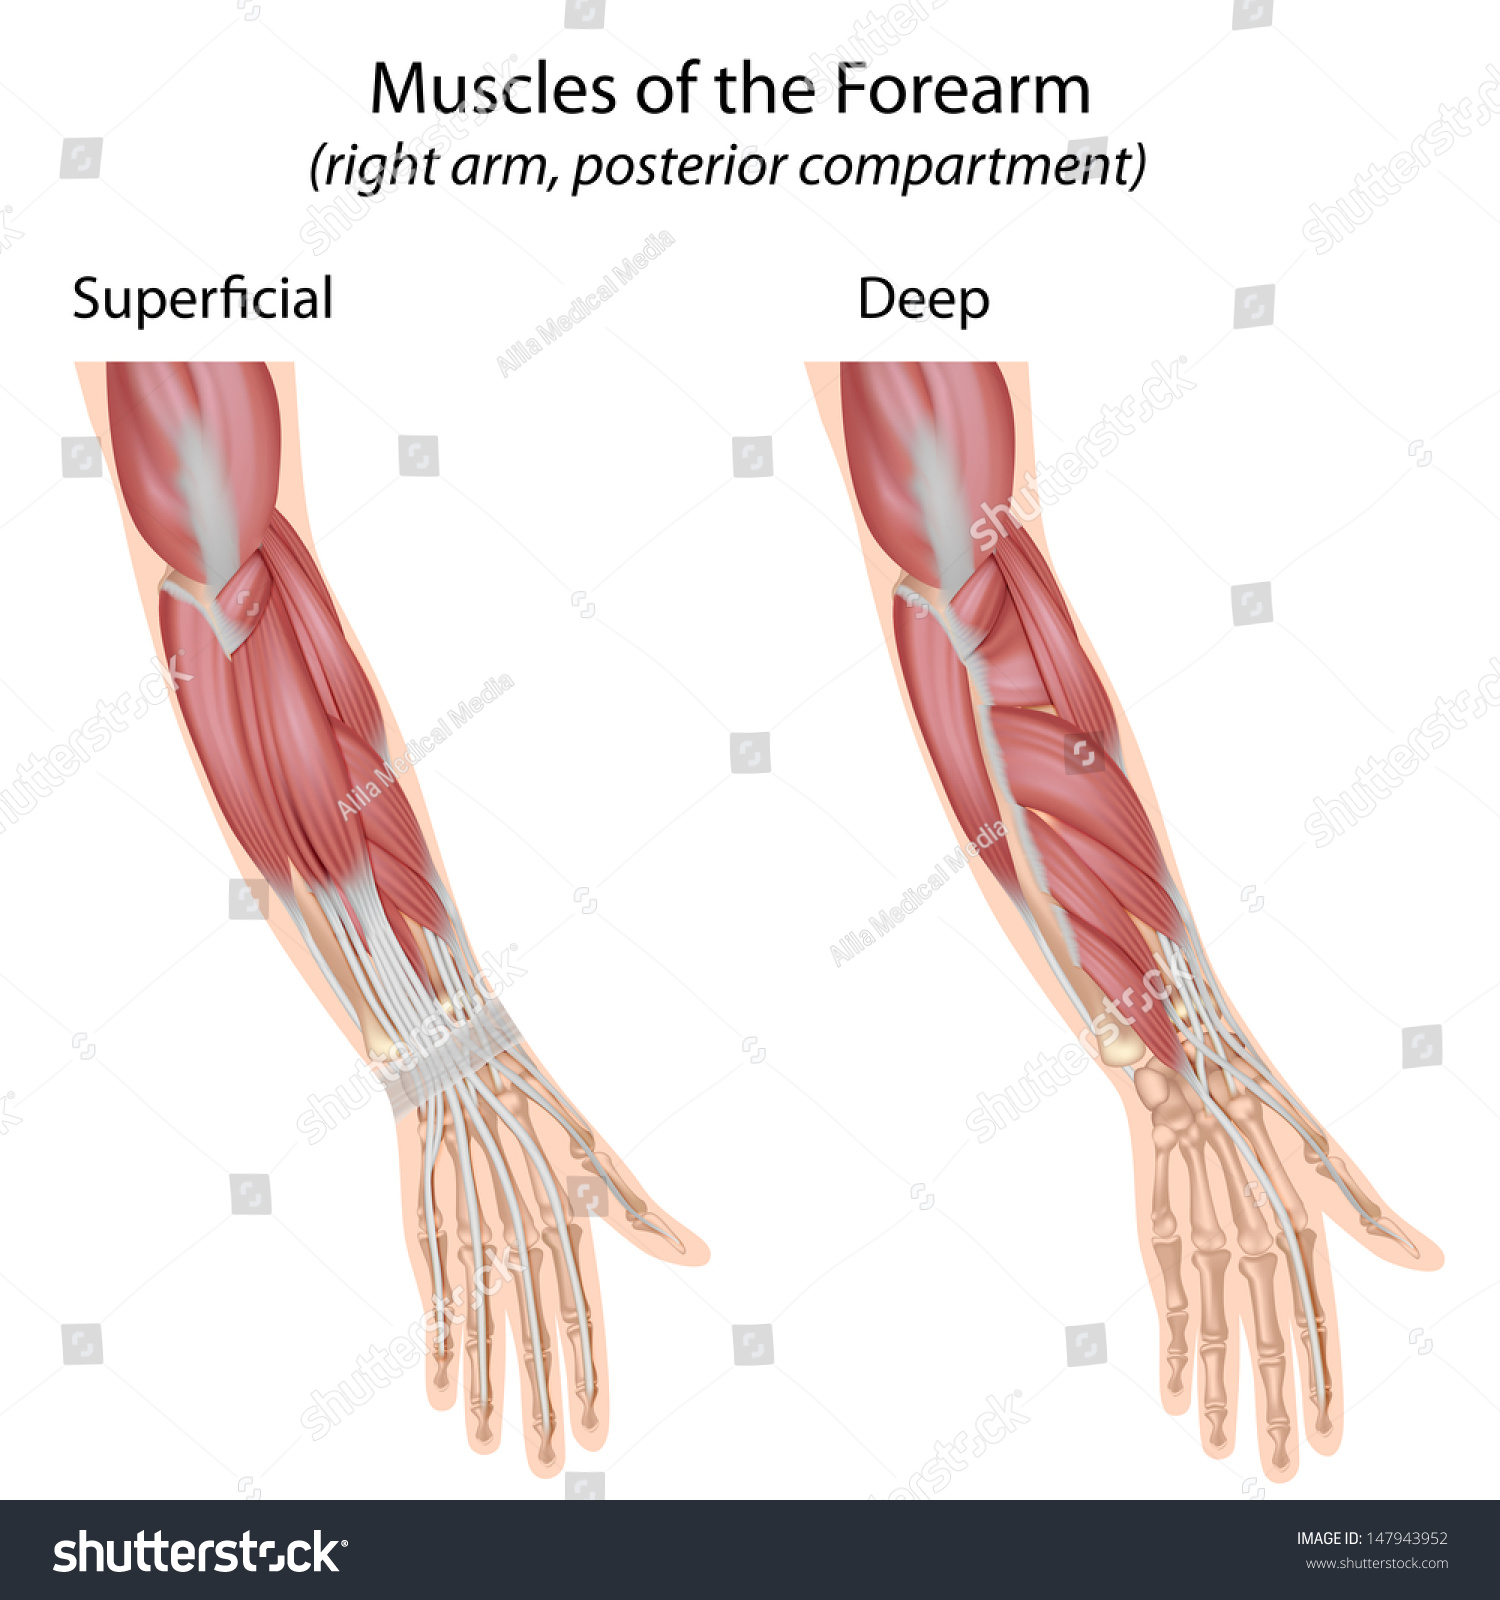 wrist and hand unlabeled diagram 1997 honda accord fuse box forearm muscles dorsal compartment stock